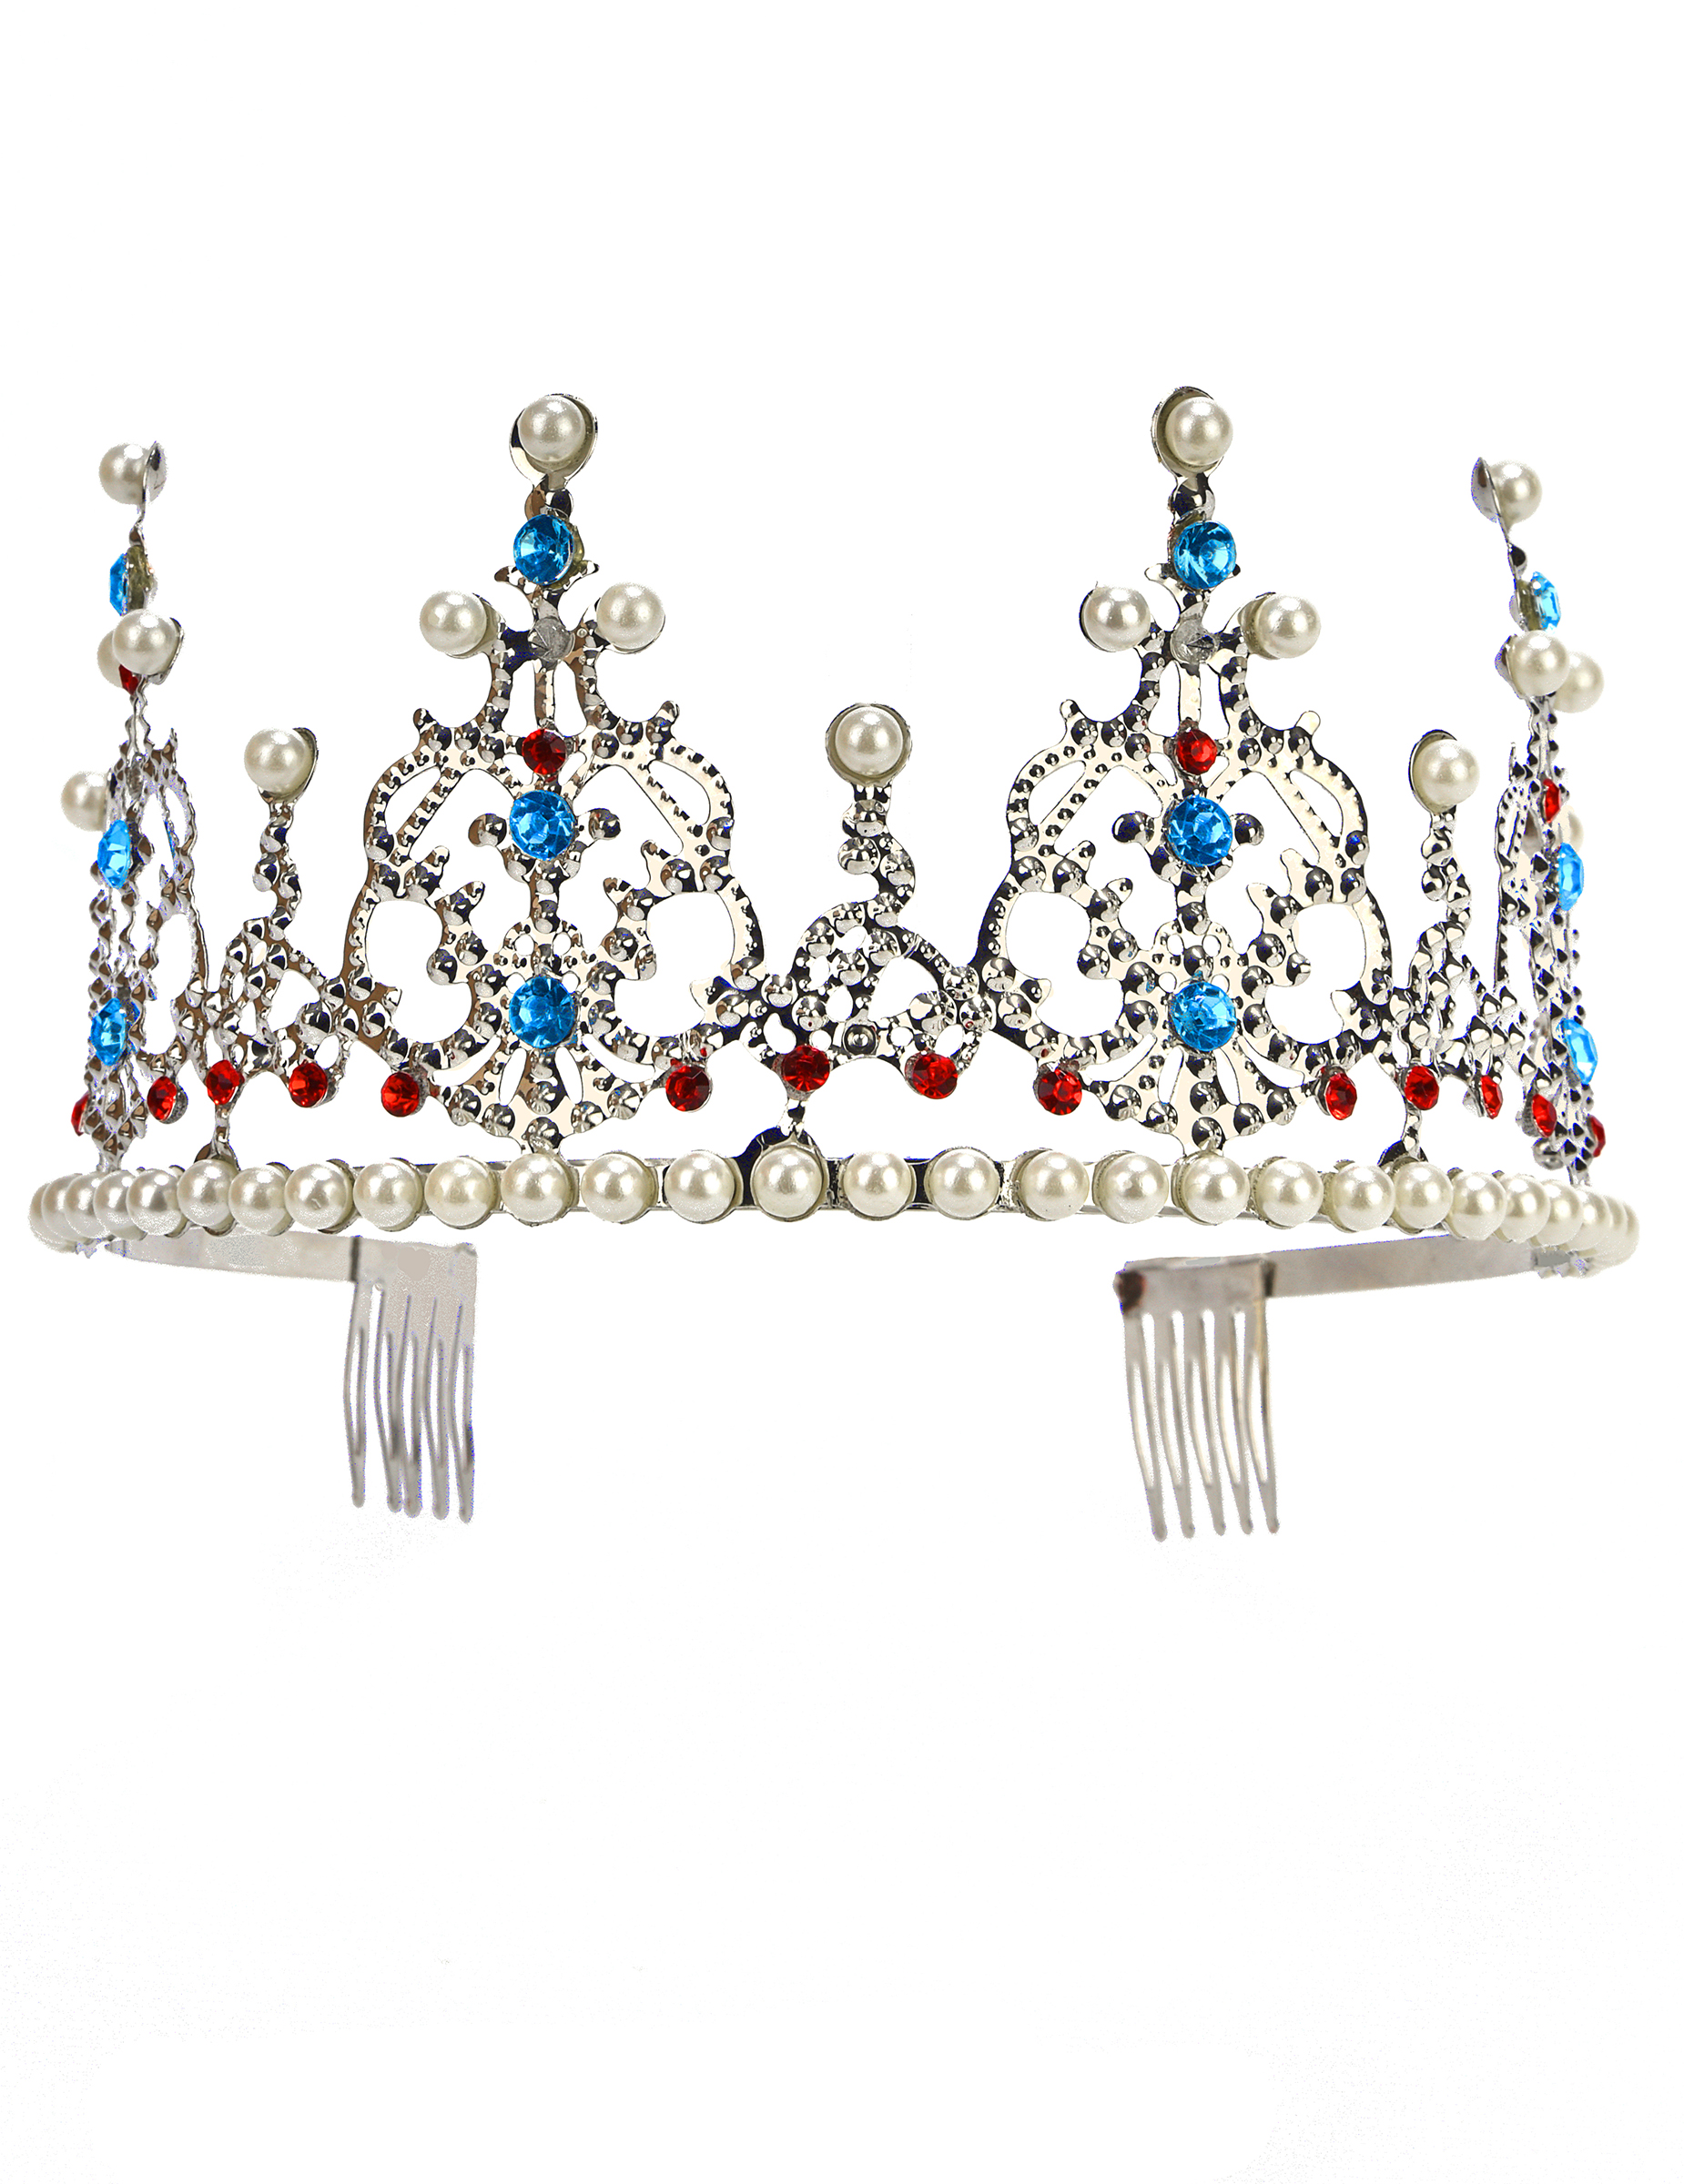 Edle prinzessinnen tiara silber g nstige faschings for Edle accessoires